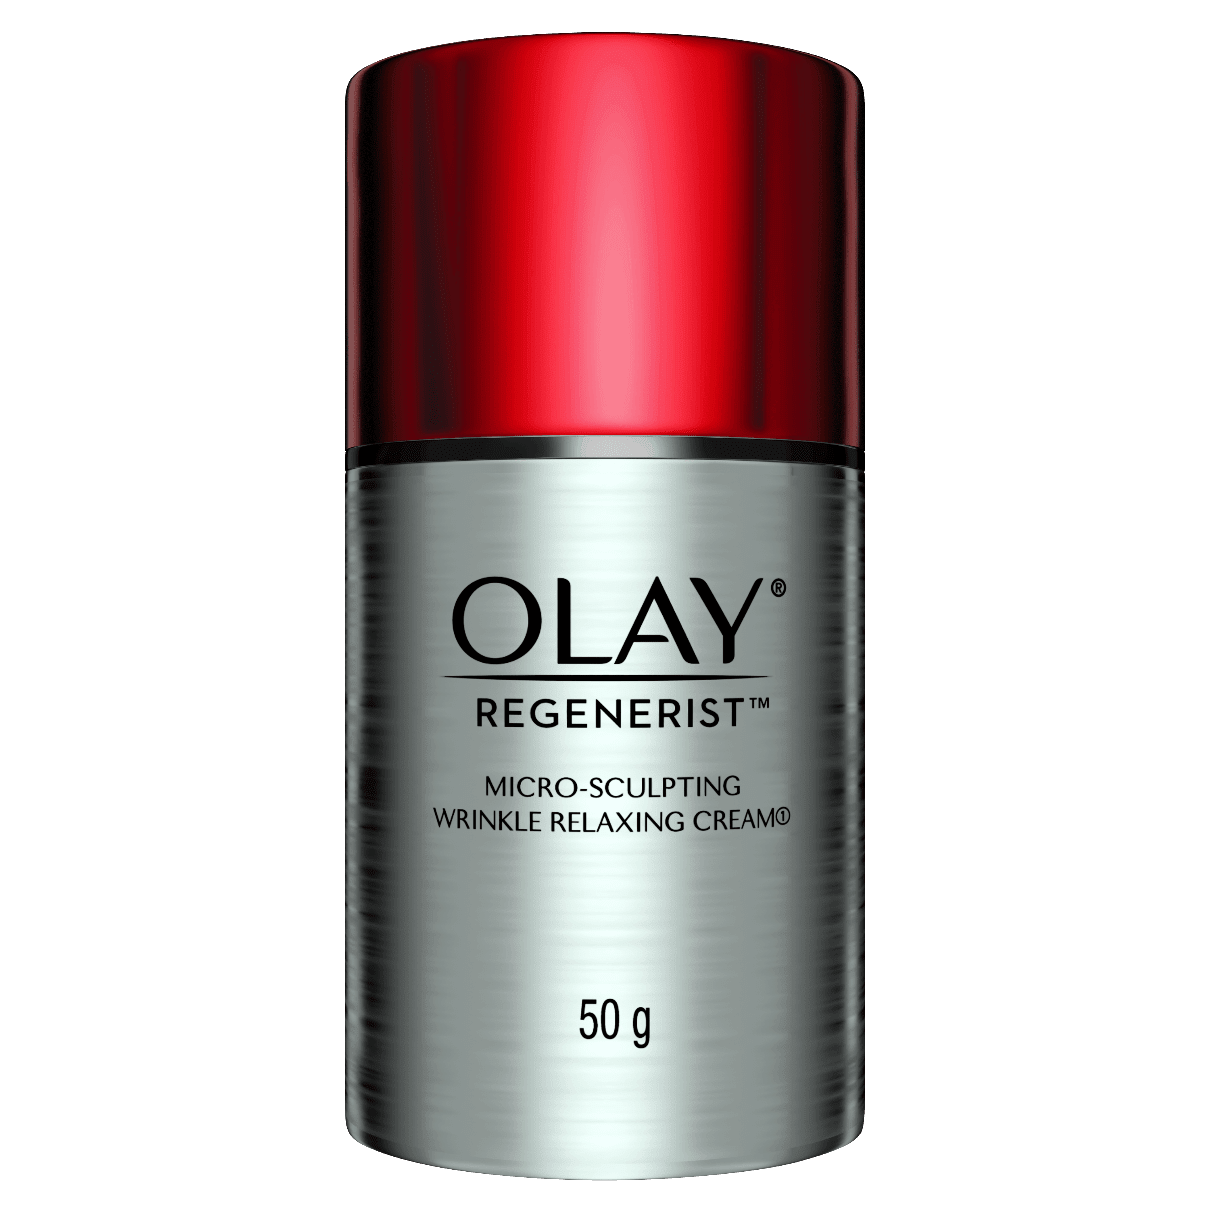 Olay Regenerist Micro-sculpting Wrinkle Relaxing Cream